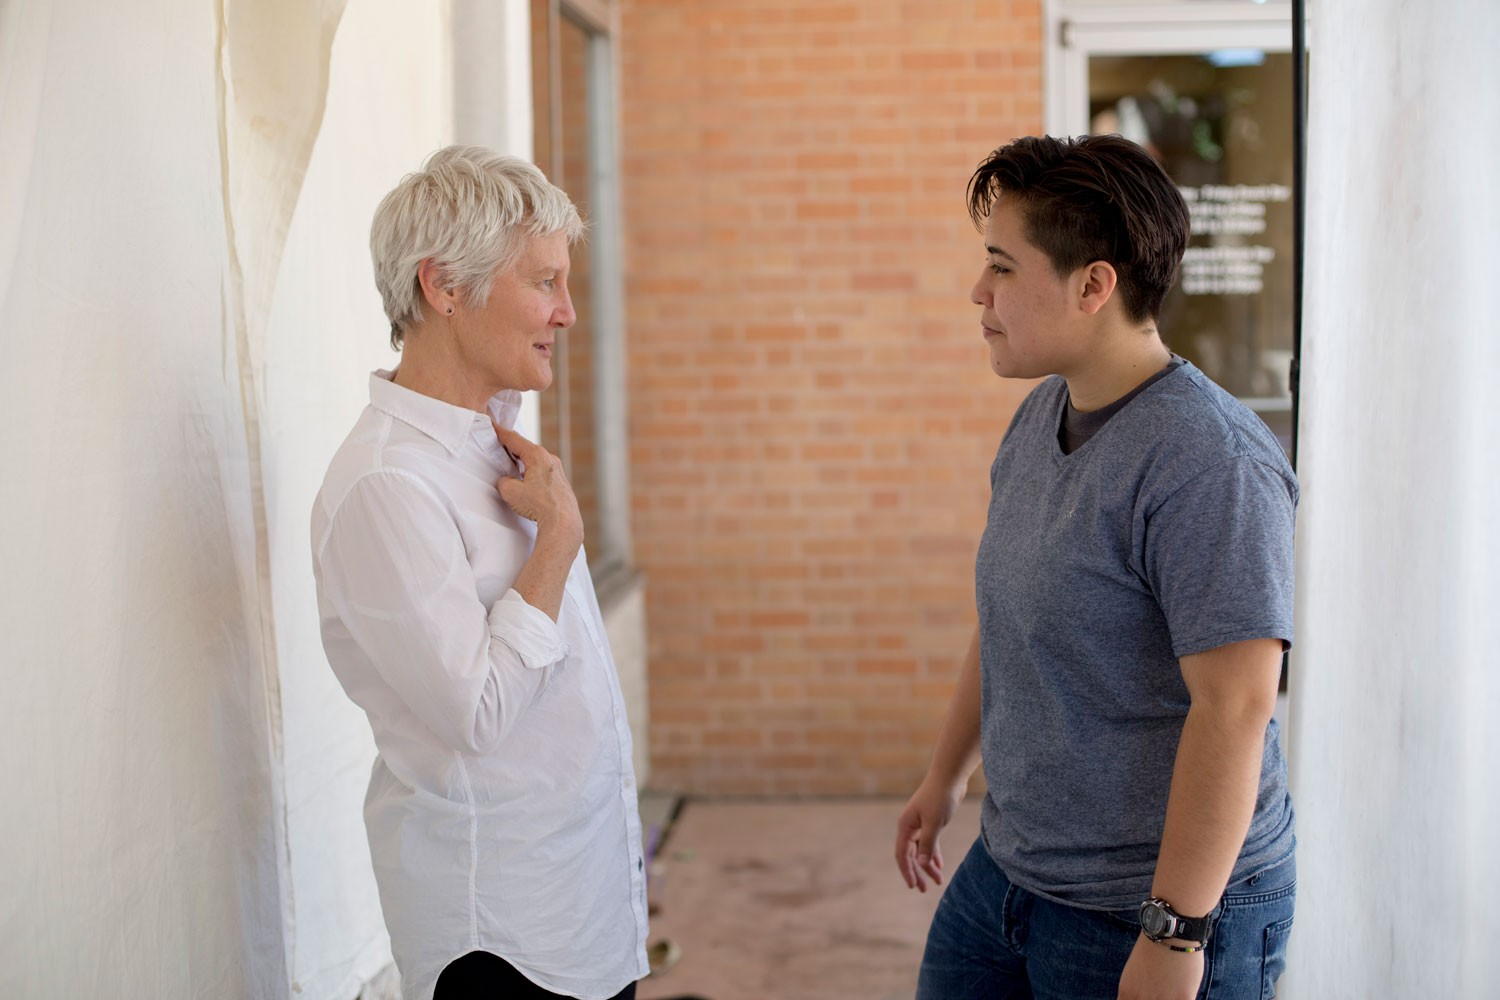 A woman talking to another person